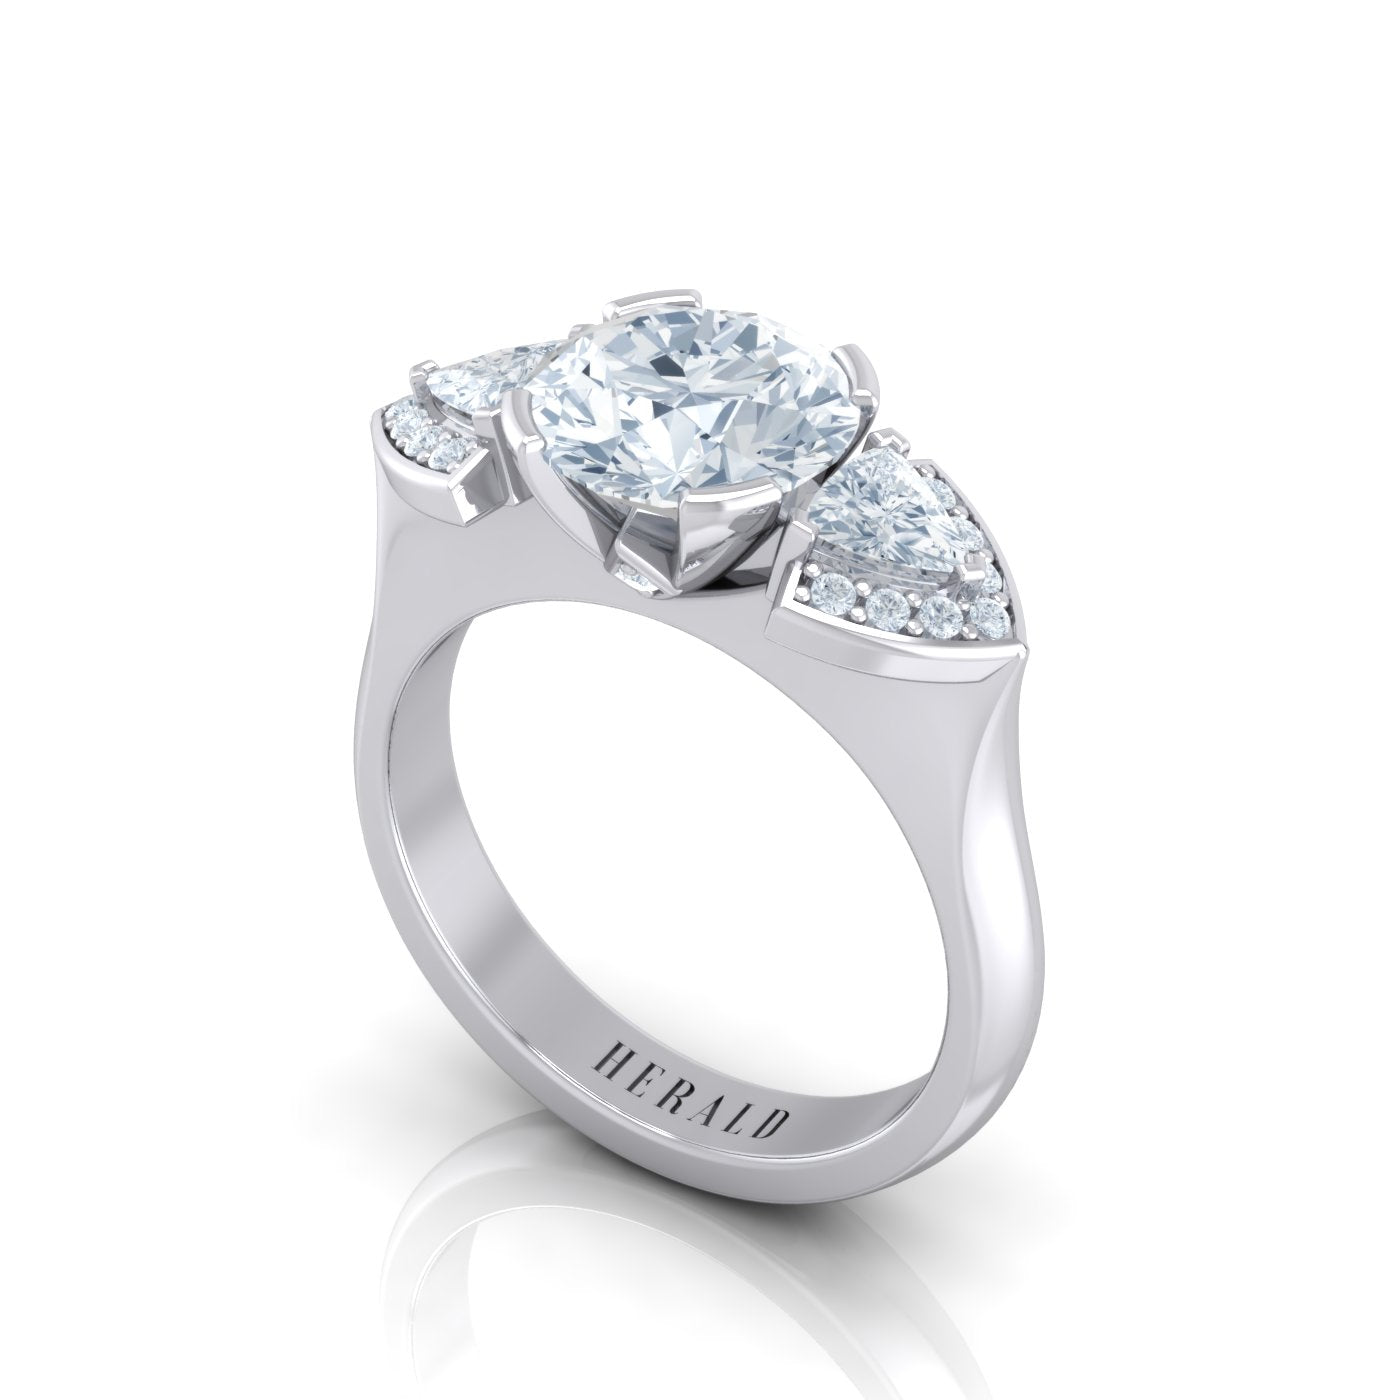 Alice Herald 3 stone diamond engagement ring in 18kt gold